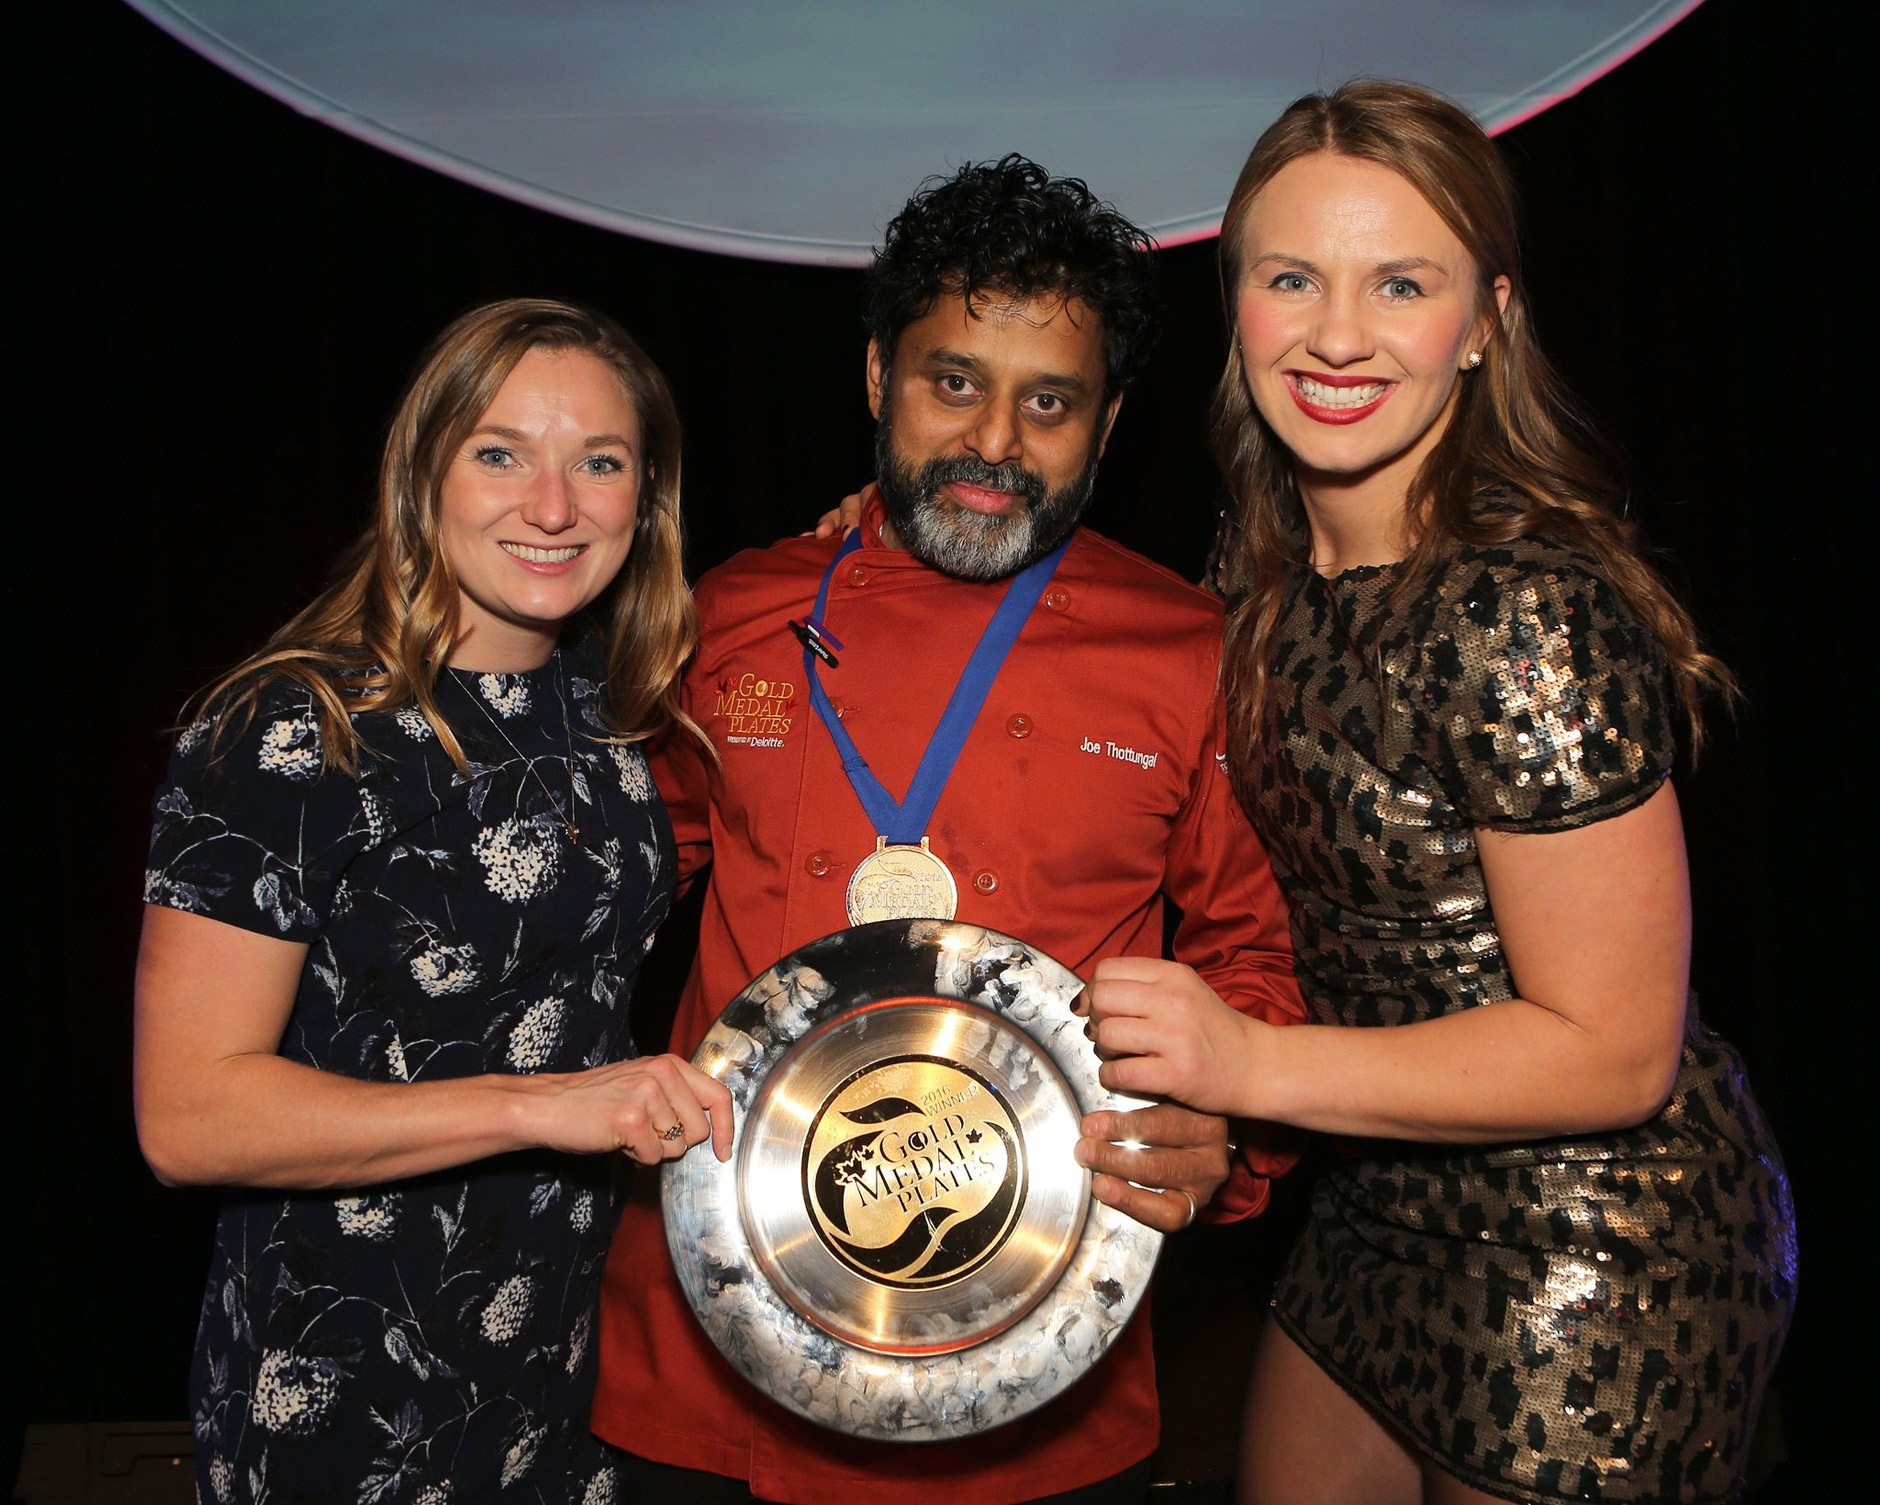 Joe Thottungal poses with Olympians Rosie MacLennan and Erica Wiebe